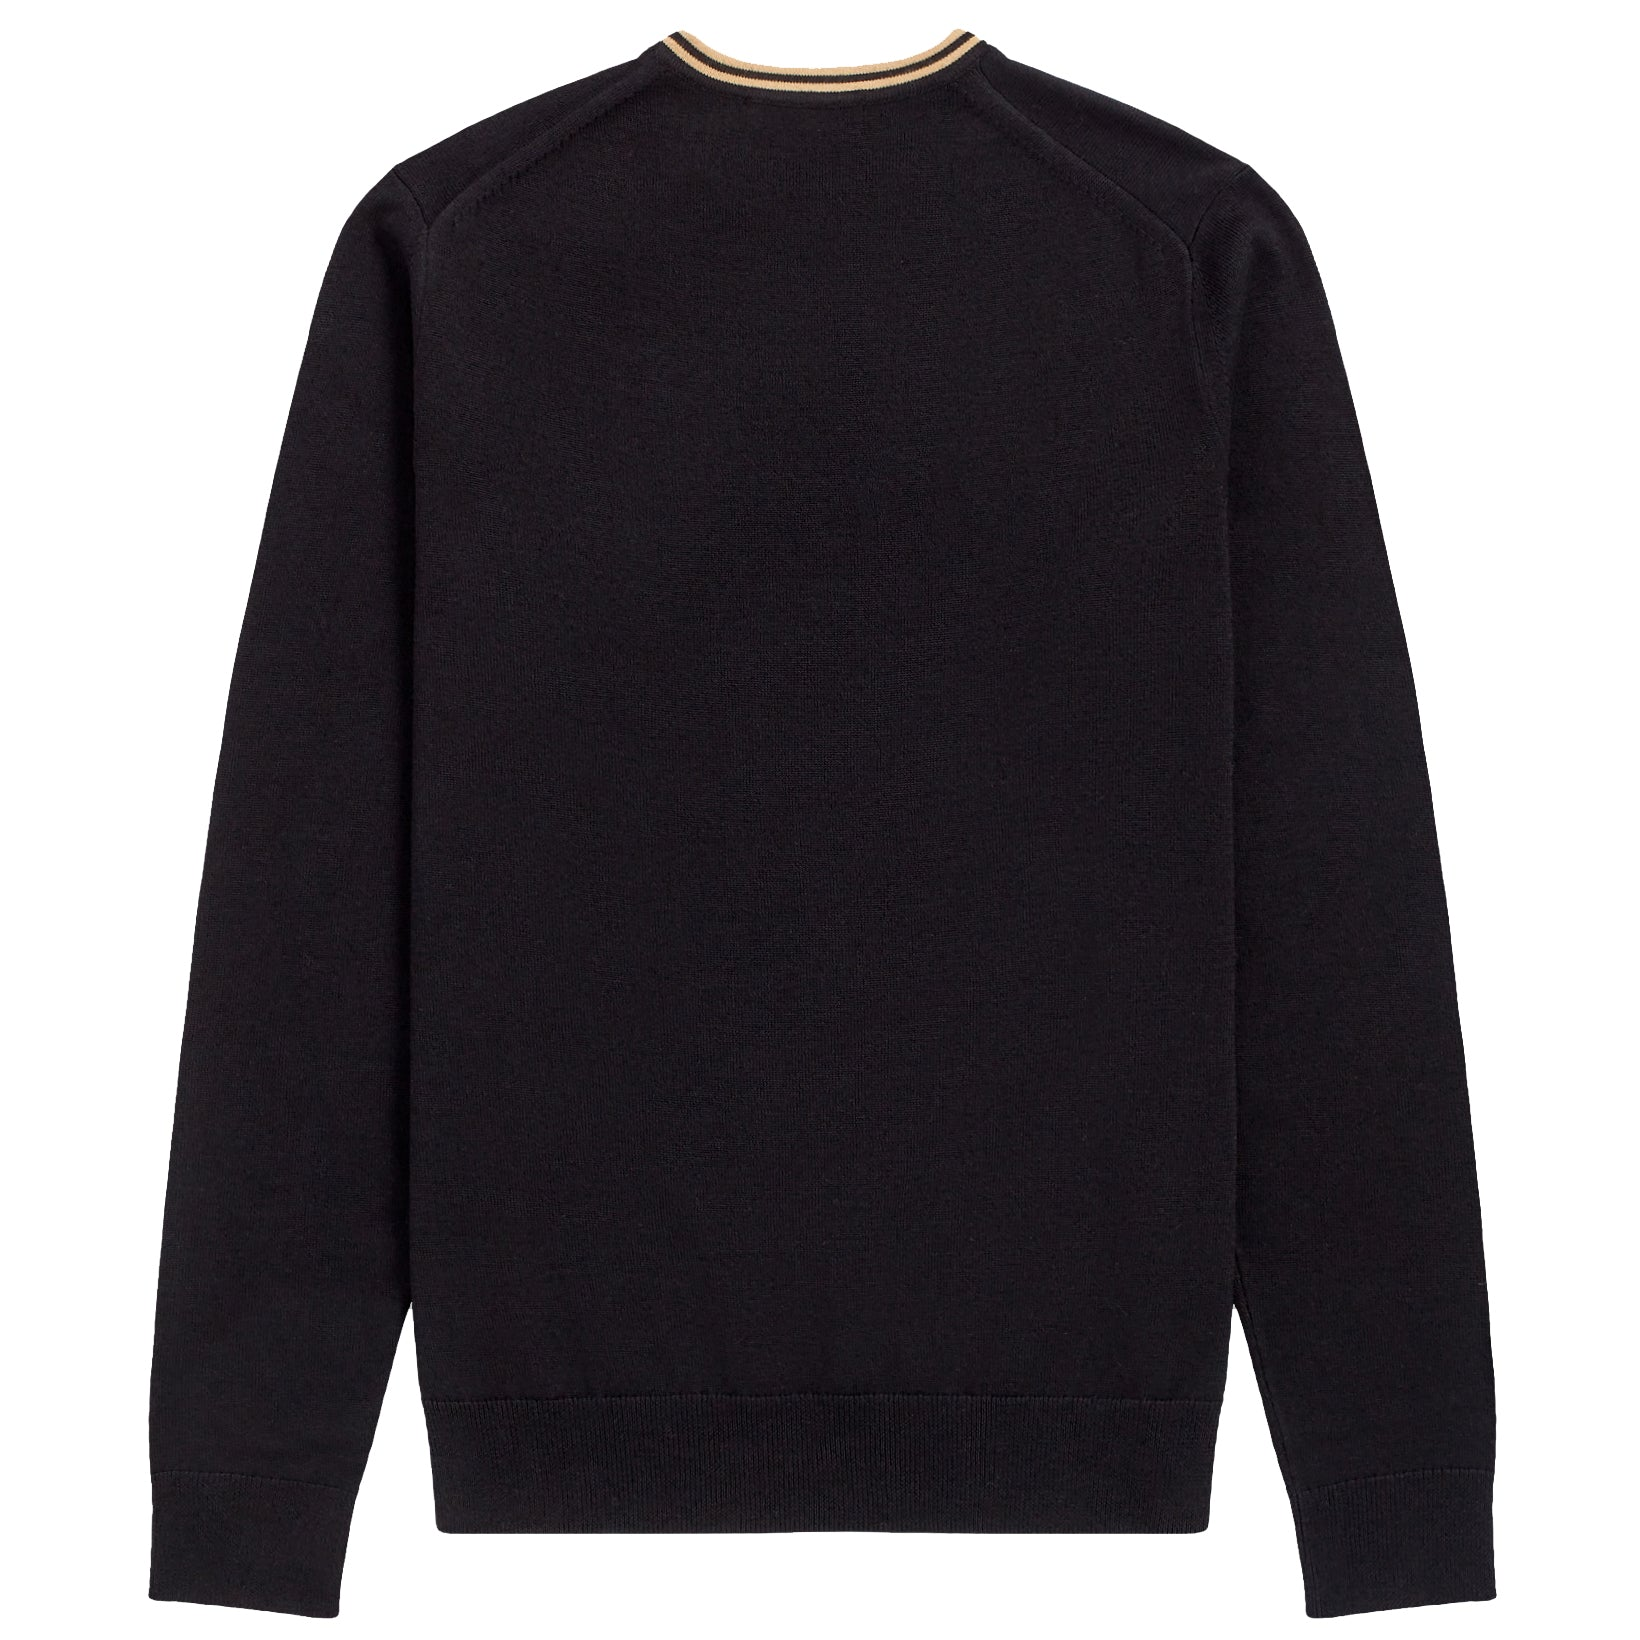 Fred Perry Classic Merino/Cotton Crew Neck, Black/Champagne